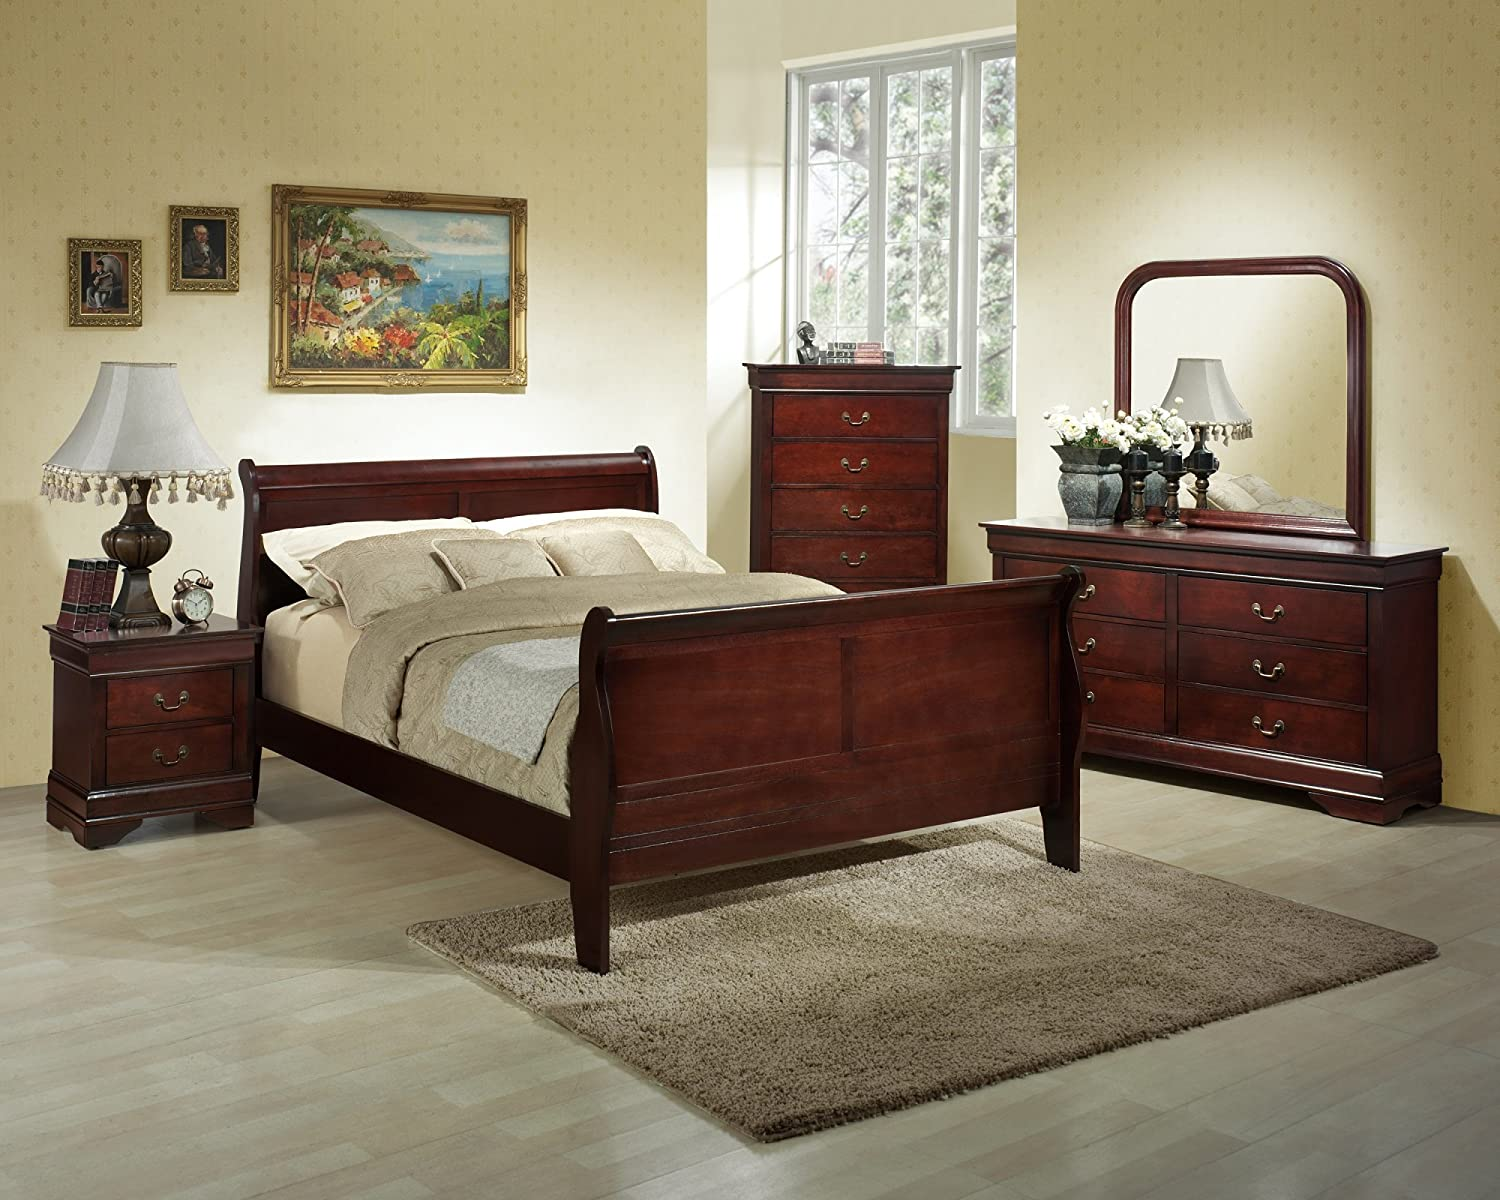 Amazon.com: Roundhill Furniture Isola 5 Piece Louis Philippe Style Sleigh Bedroom  Set, King Bed, Dresser Mirror And 2 Night Stands, Cherry Finish: Kitchen U0026  ...